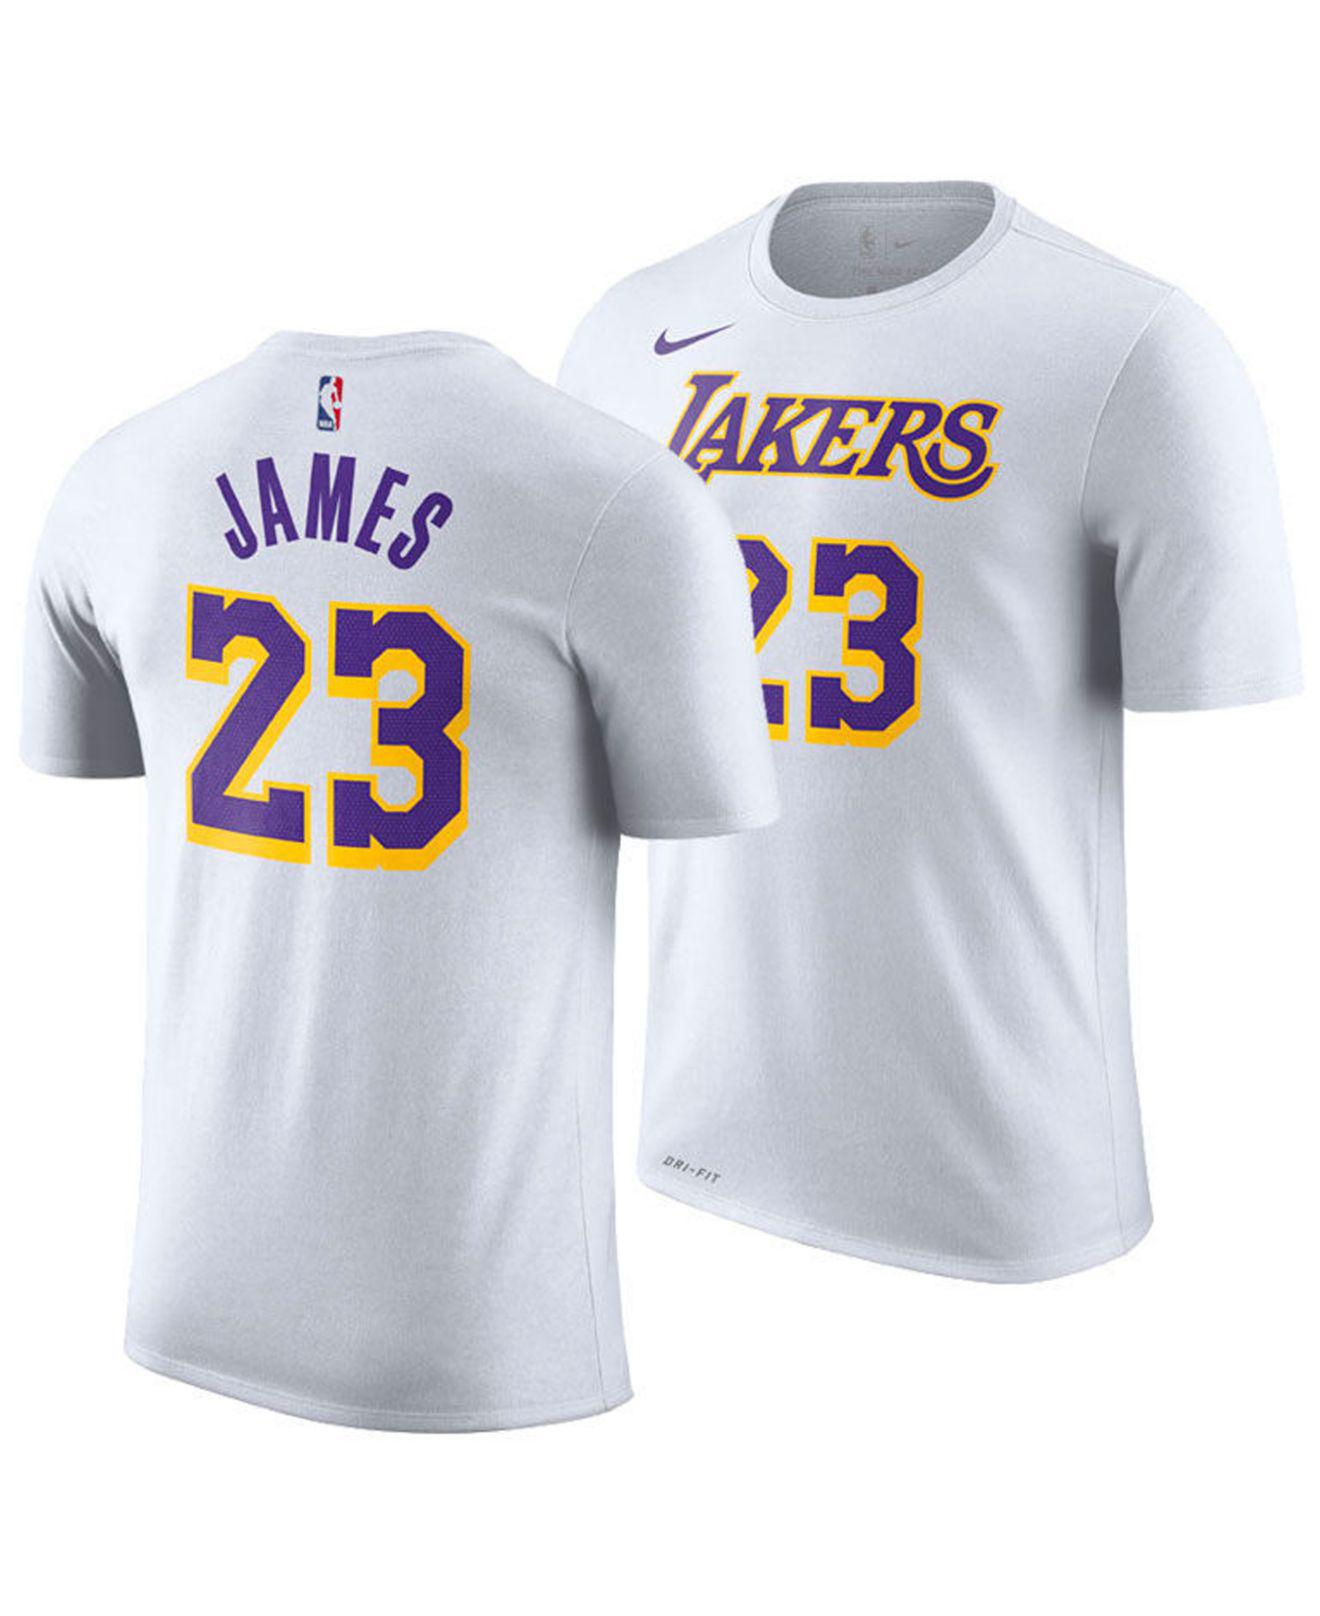 Nike - White Lebron James Los Angeles Lakers Icon Player T-shirt for Men -.  View fullscreen 0885eacb3